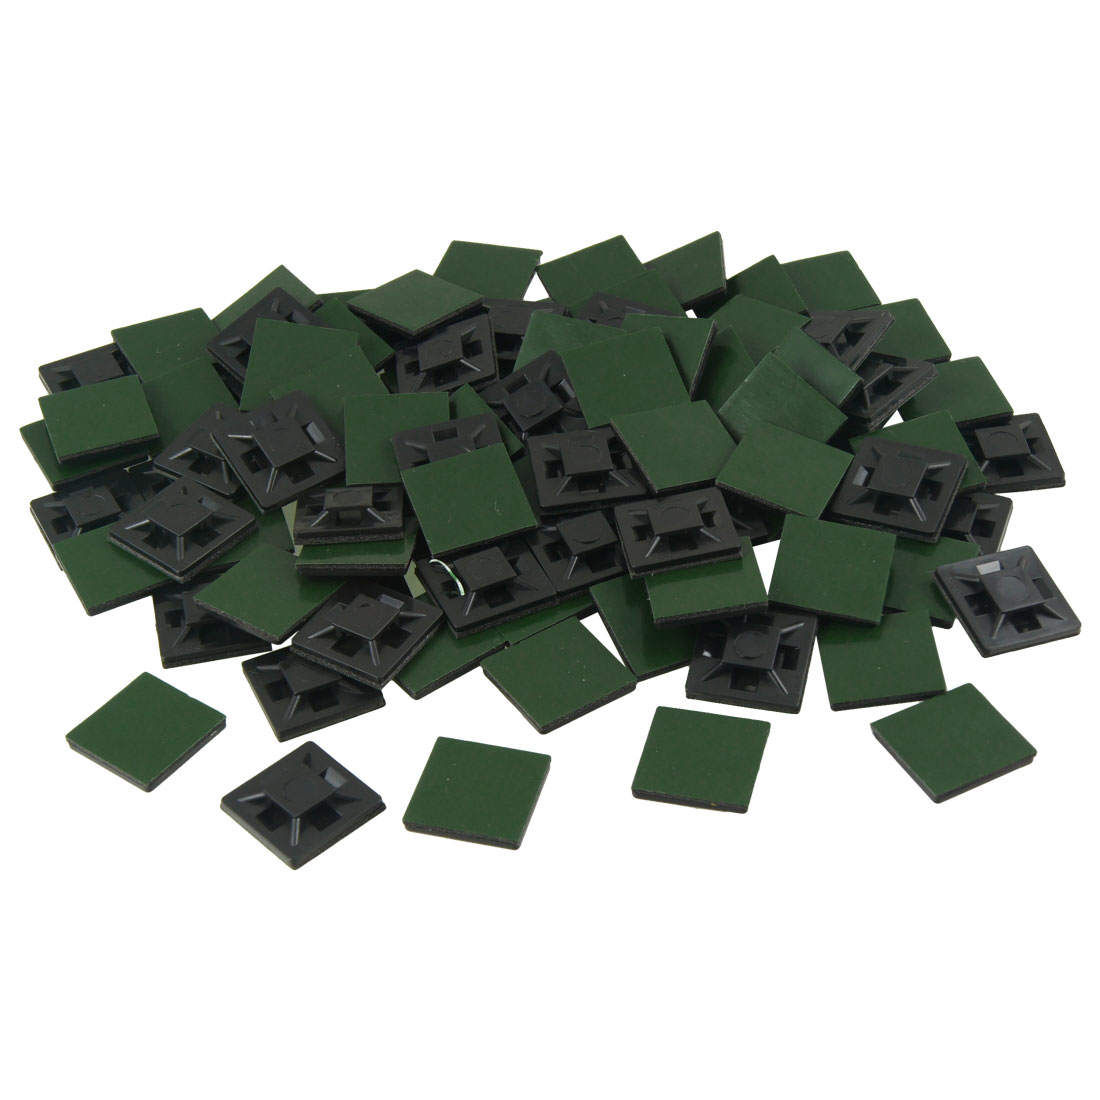 100 Pcs 20mm x 20mm x 4mm Self Adhesive Cable Tie Mount Base Holders Black